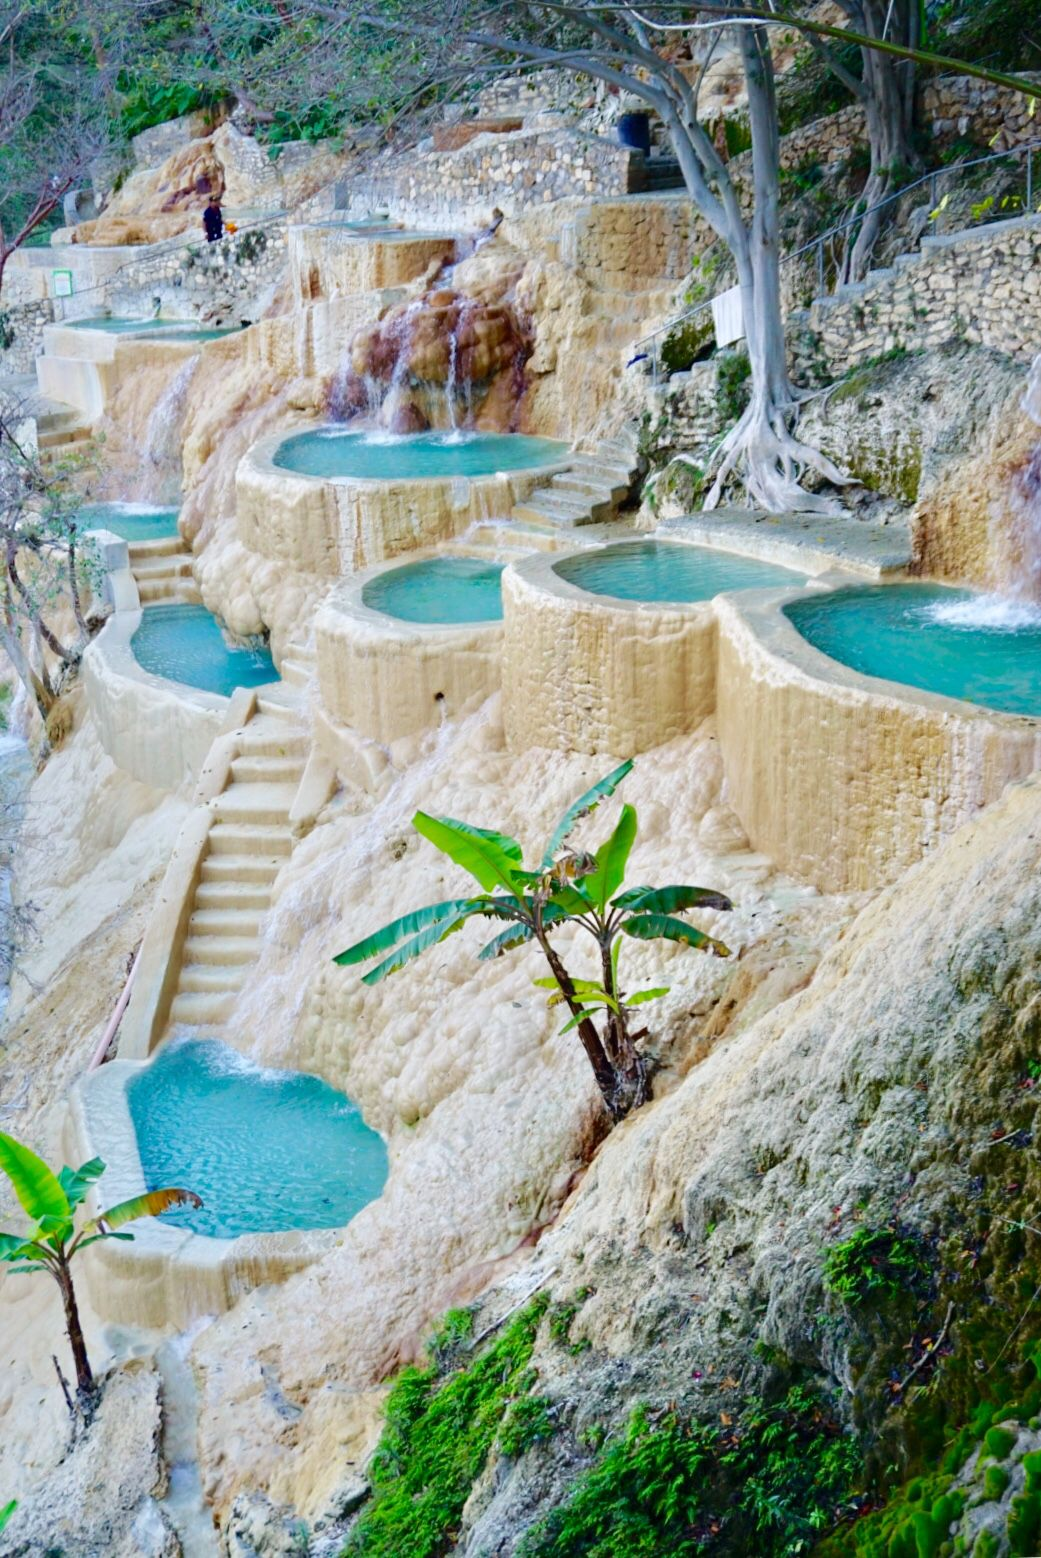 Grutas Tolantongo hot springs in Mexico